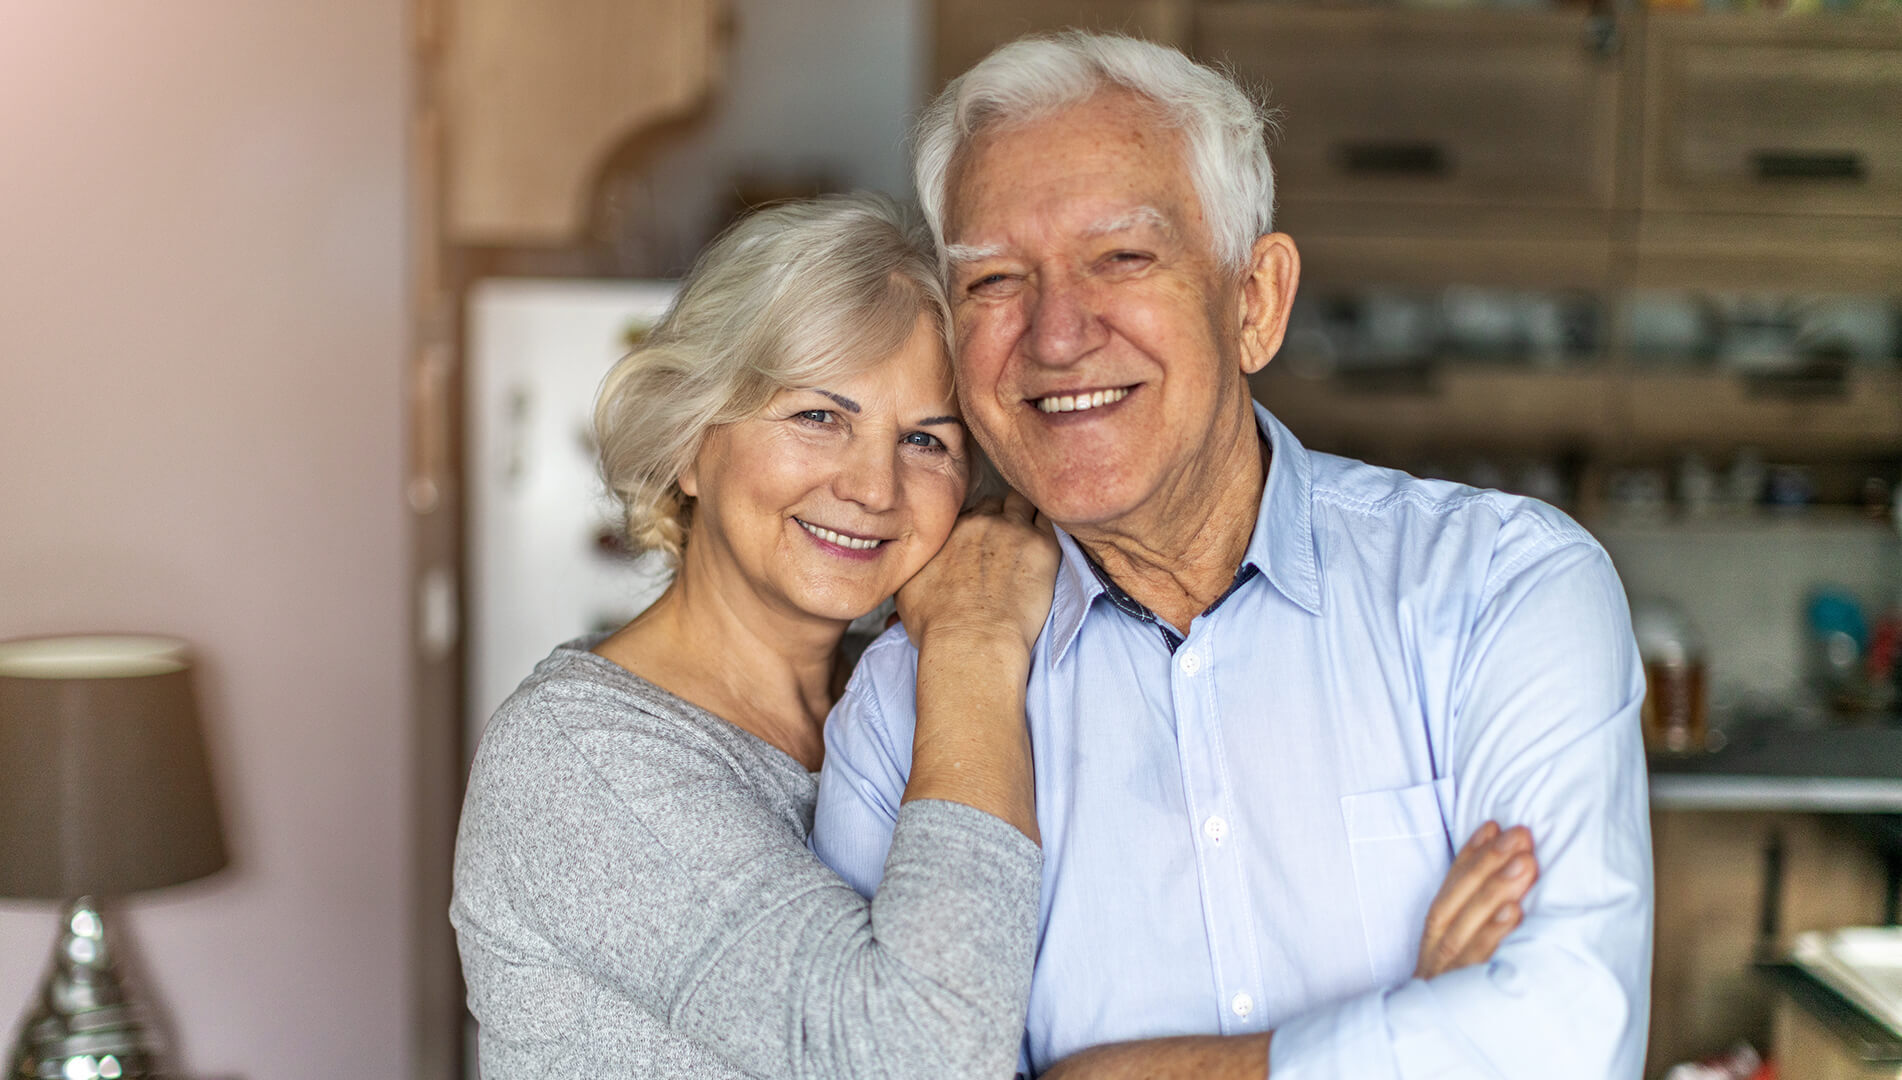 Healthy Relationships and Longevity